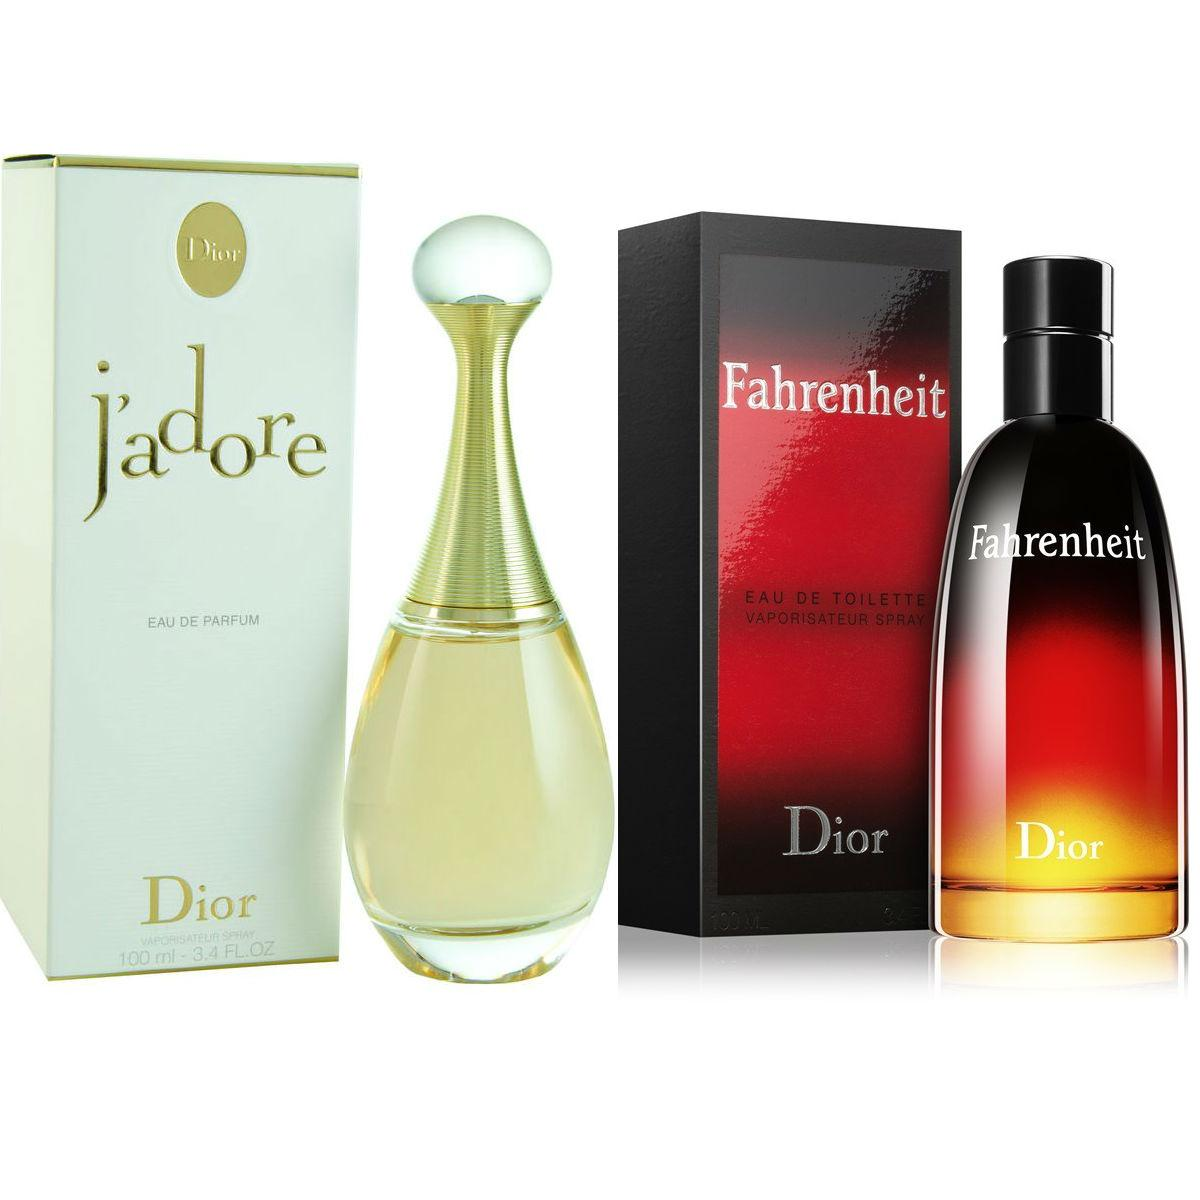 d7dfc68adb Dior J`Adore Eau De Parfum For Women 100ml And Dior Farenheit Eau De  Toilette Perfume for Men 125ml